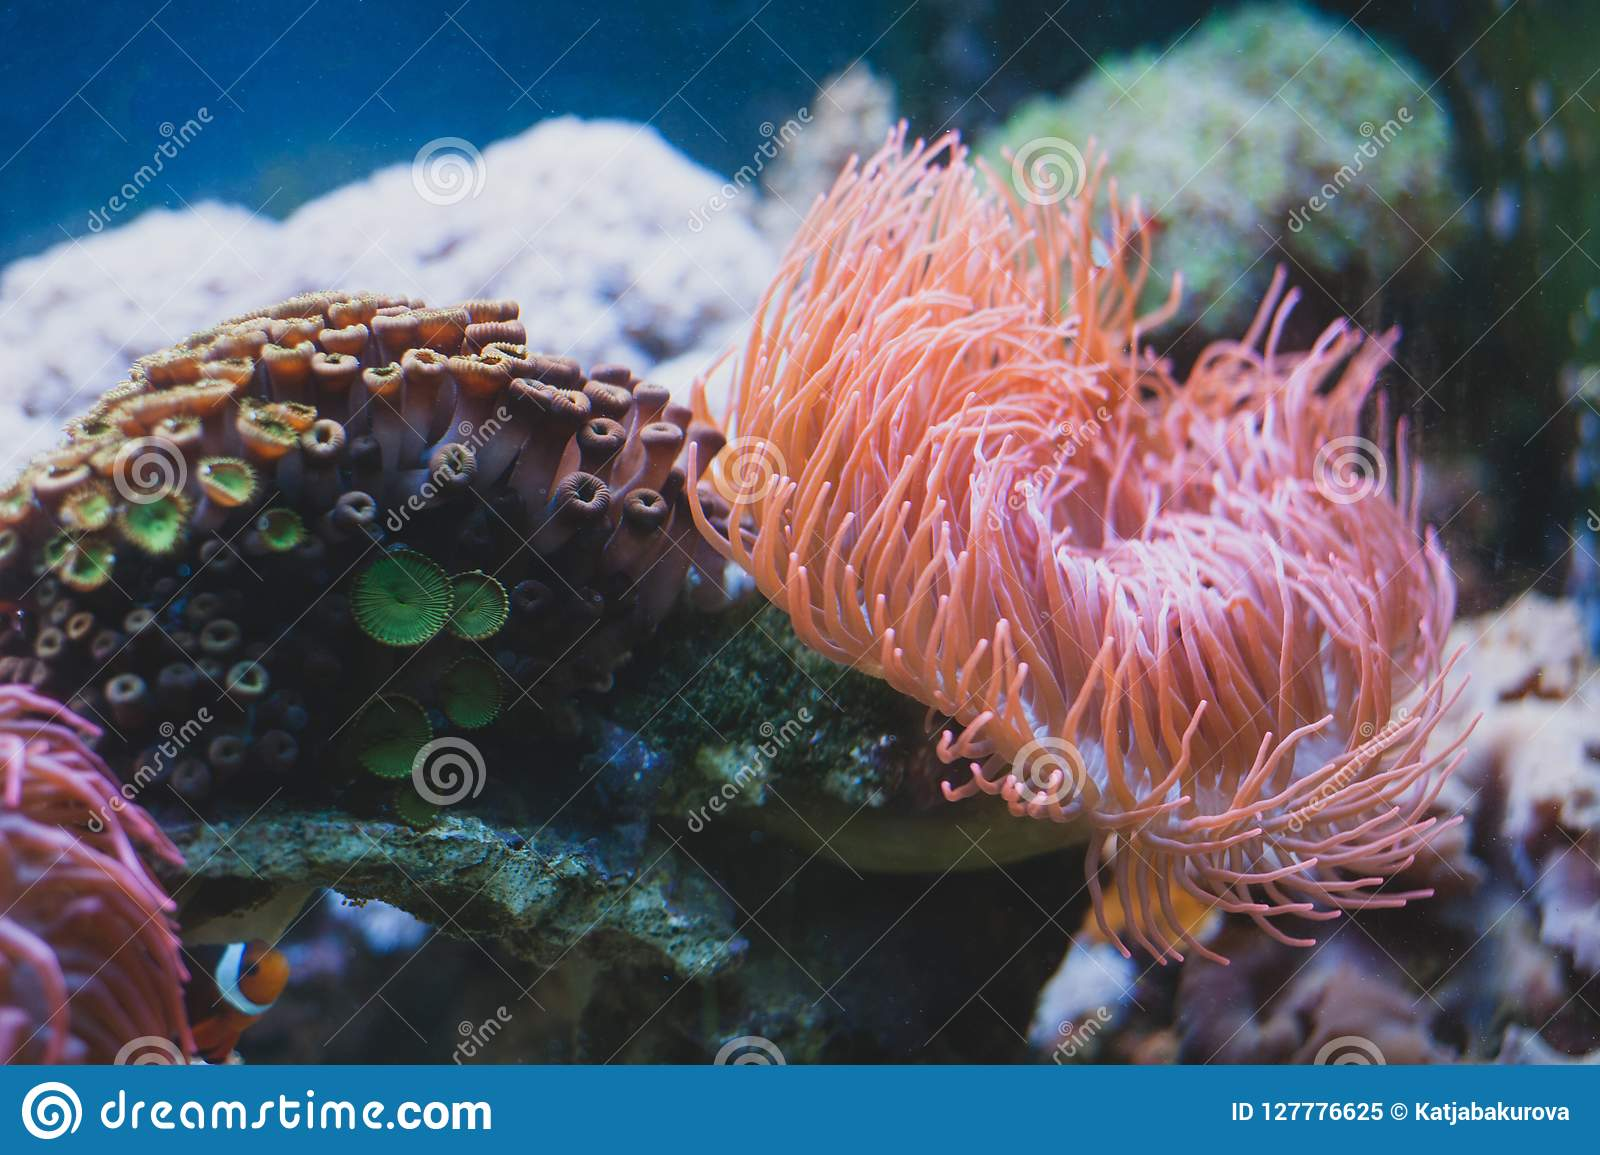 sea anemone and in